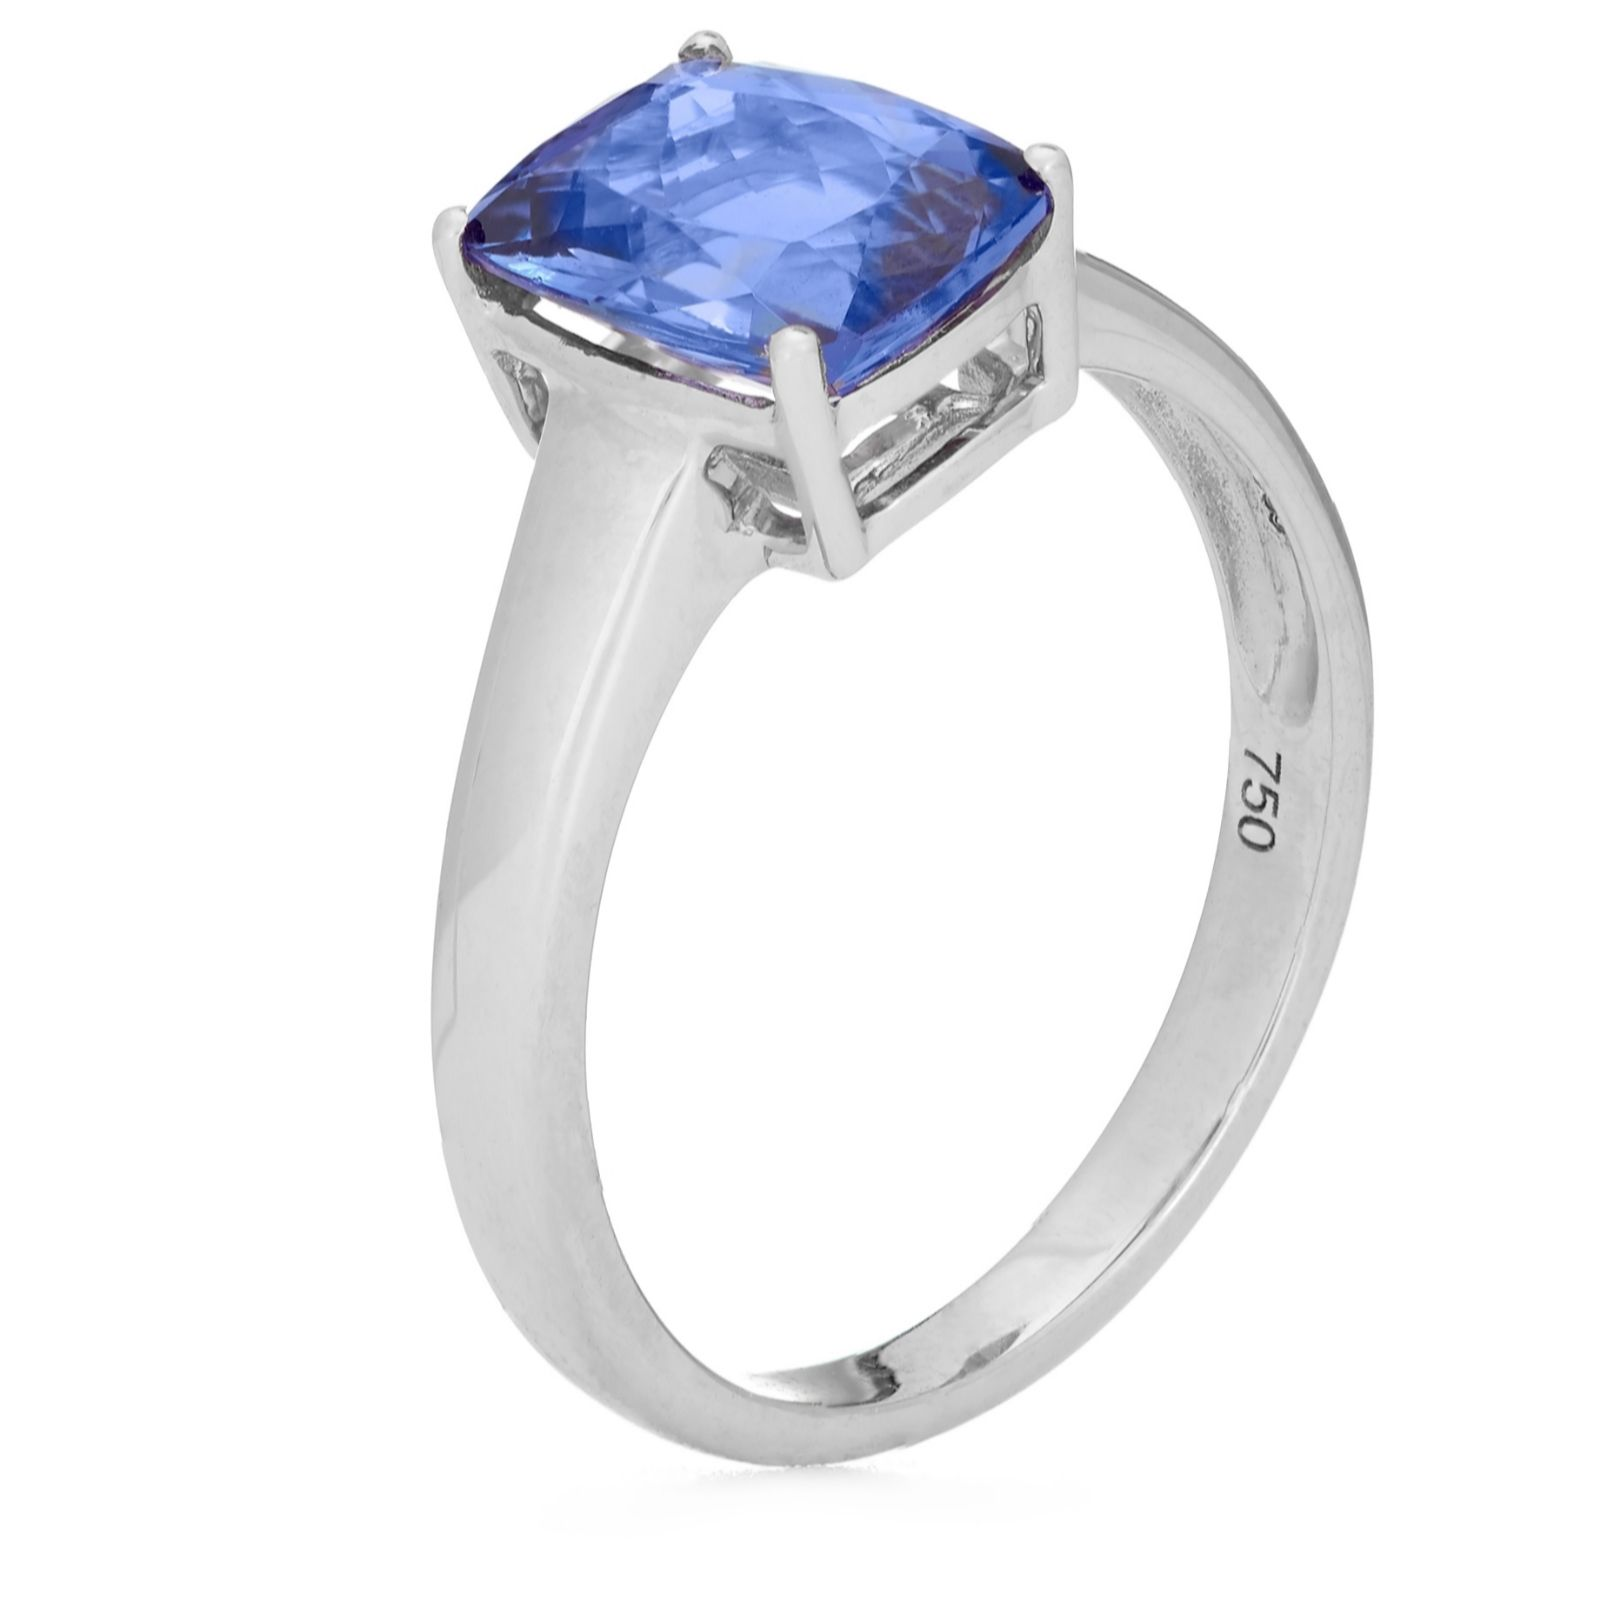 ring engagement diana sterling rings sapphire amazon silver kate blue com light dp jewelrypalace princess middleton created